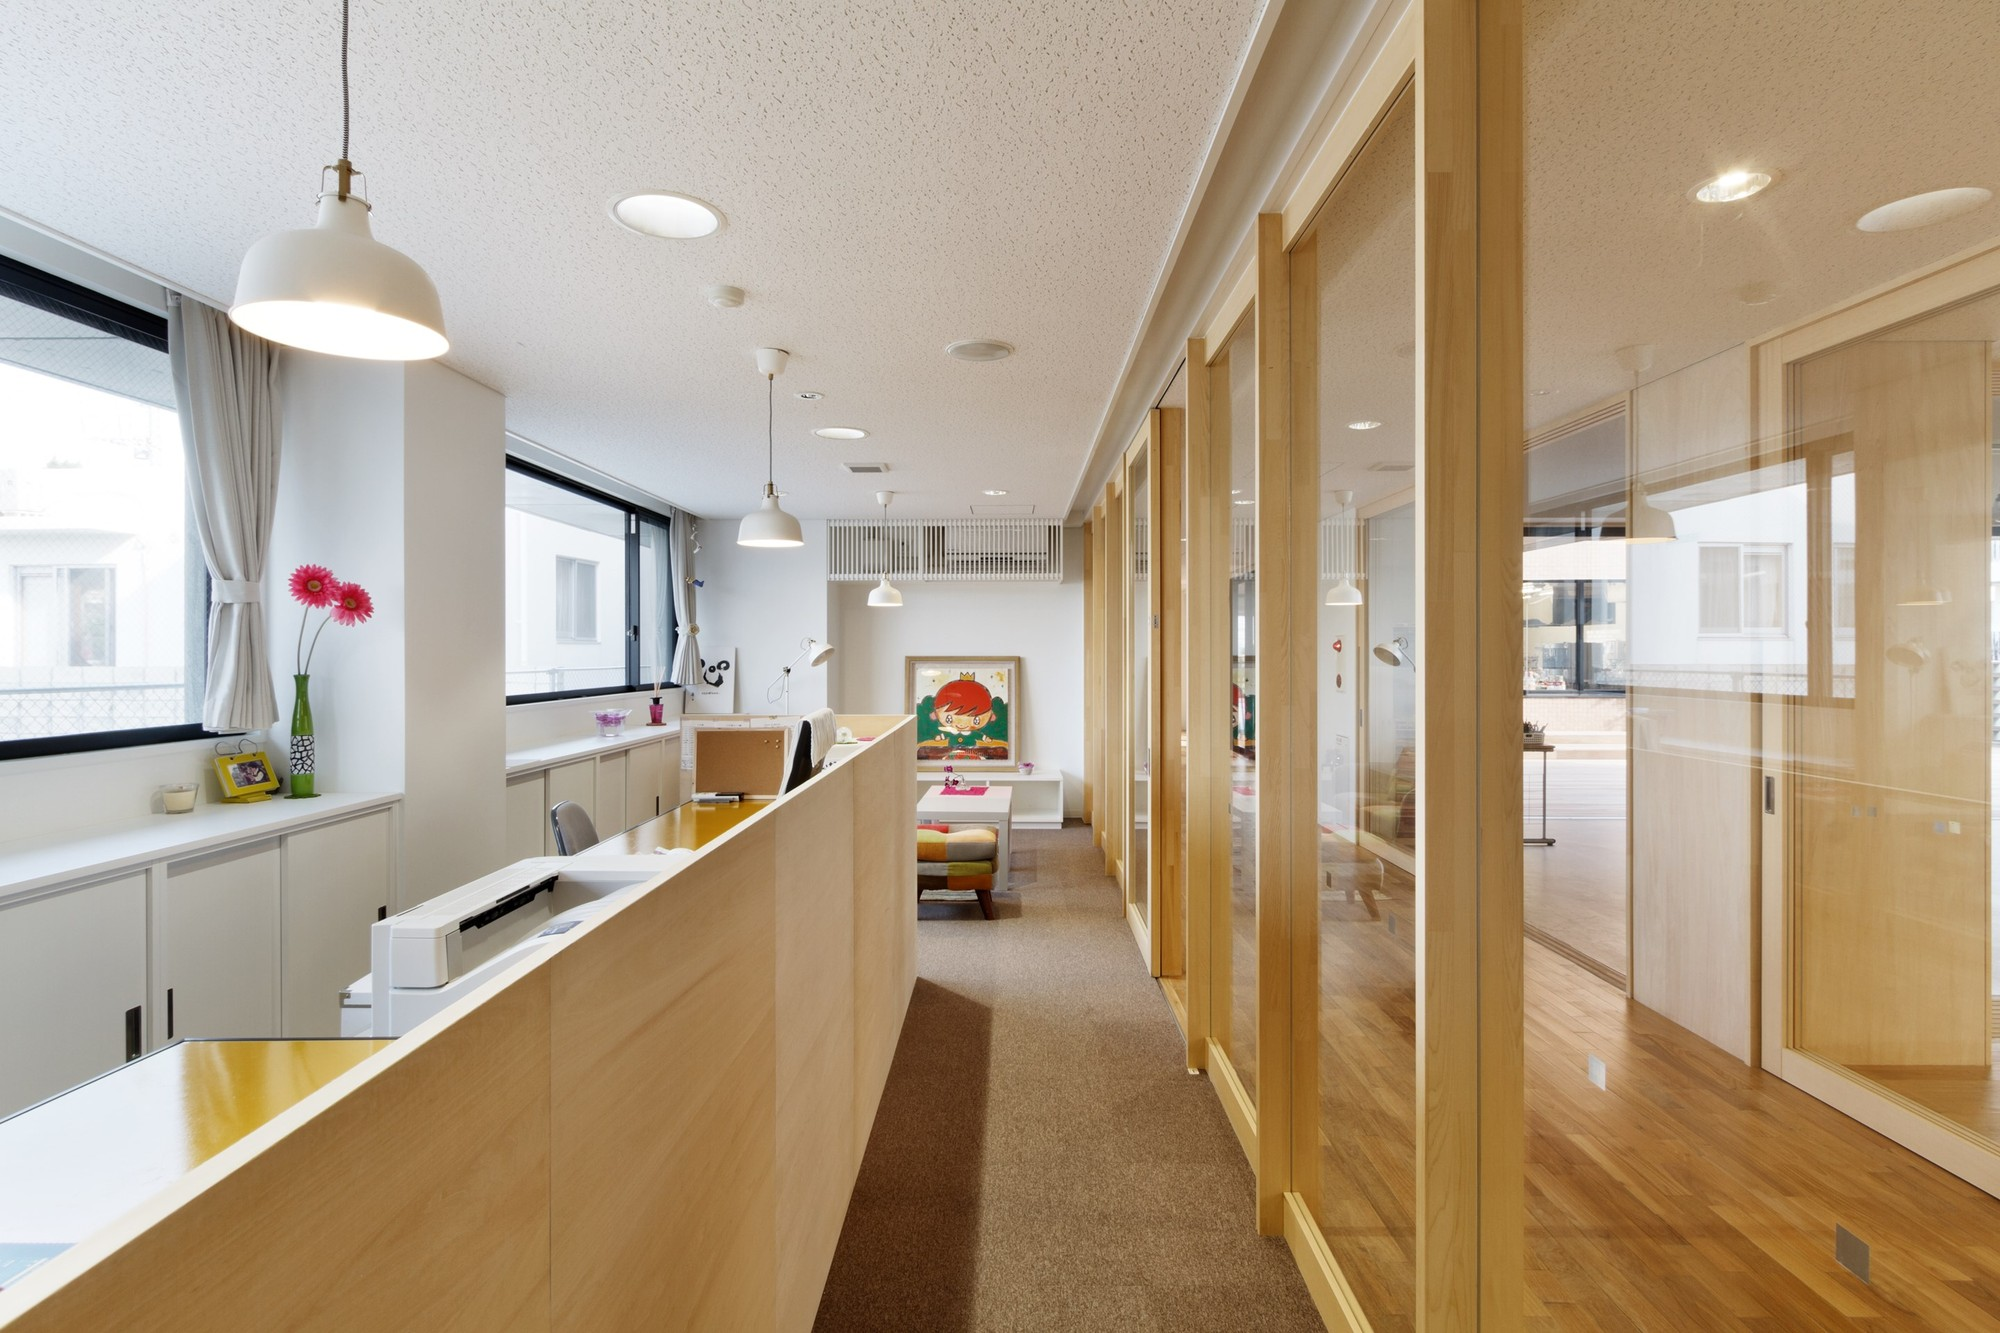 Gallery Of Hanazono Kindergarten And Nursery